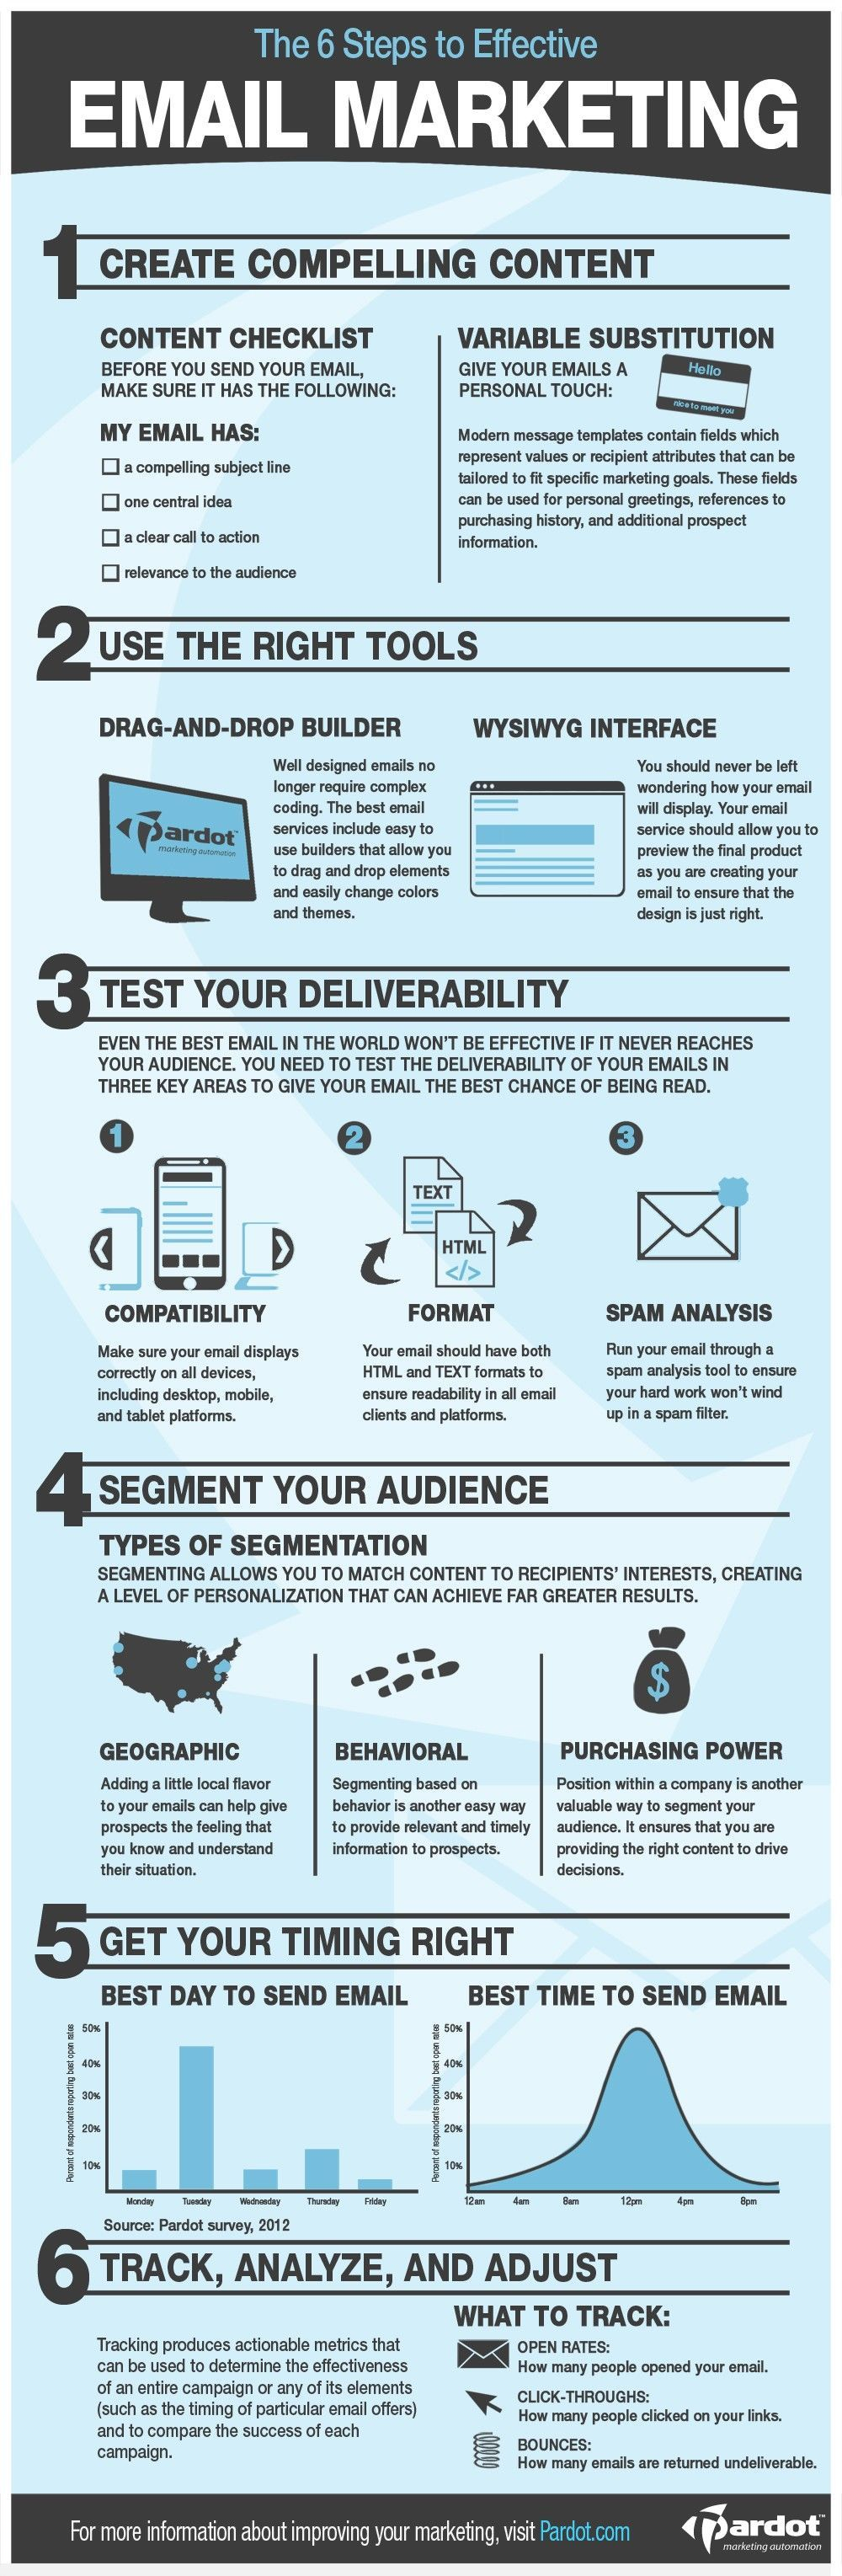 6 Steps To Effective Email Marketing business email infographic marketing promoting entrepreneur business tips email marketing entrepreneurship marketing tip marketing tips